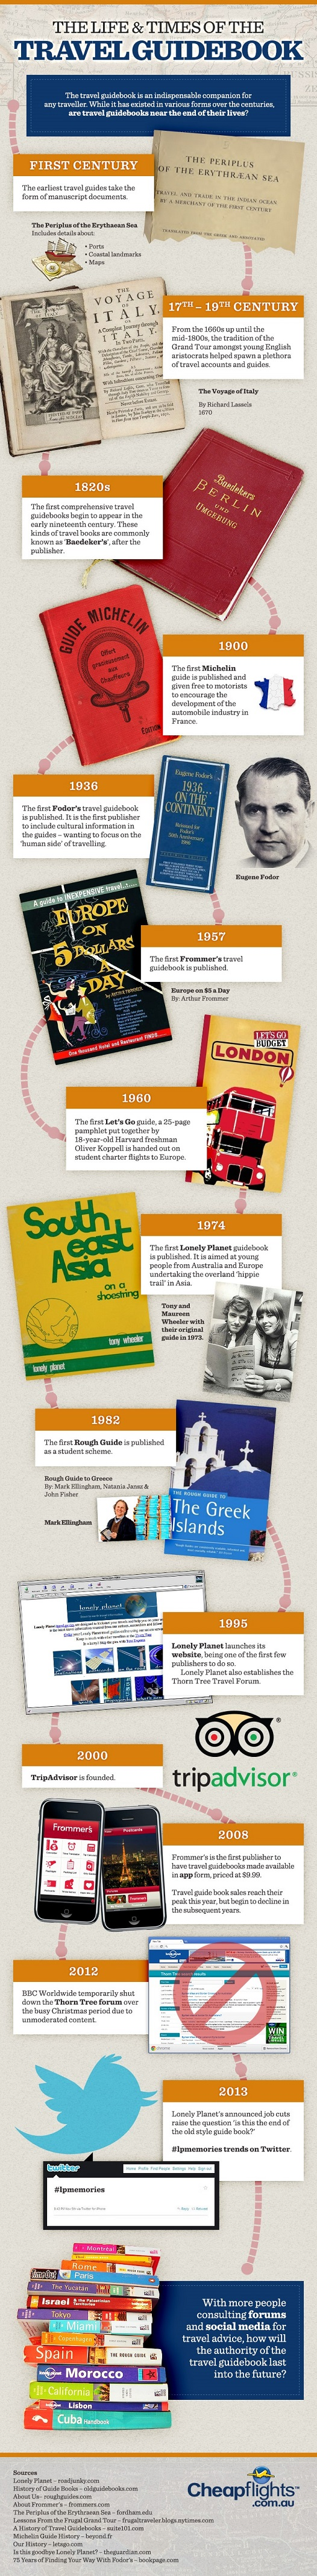 The Fall of Travel Guide Books-Infographic